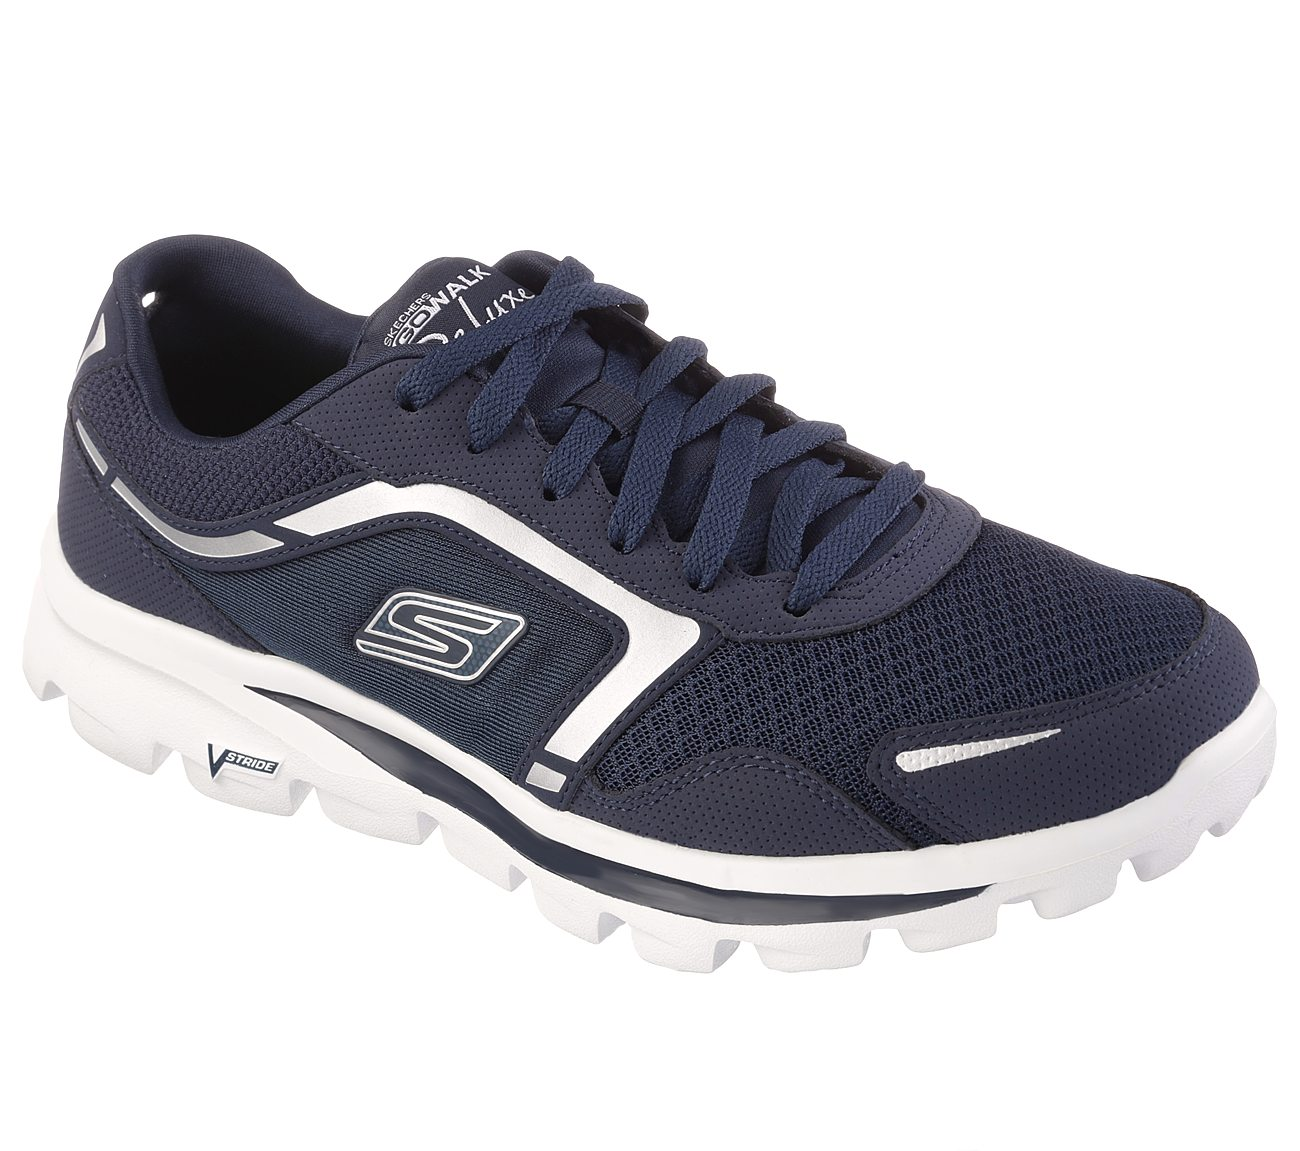 23202588cdf98 Buy SKECHERS Skechers GOwalk Move - Deluxe On the GO Shoes only $68.00